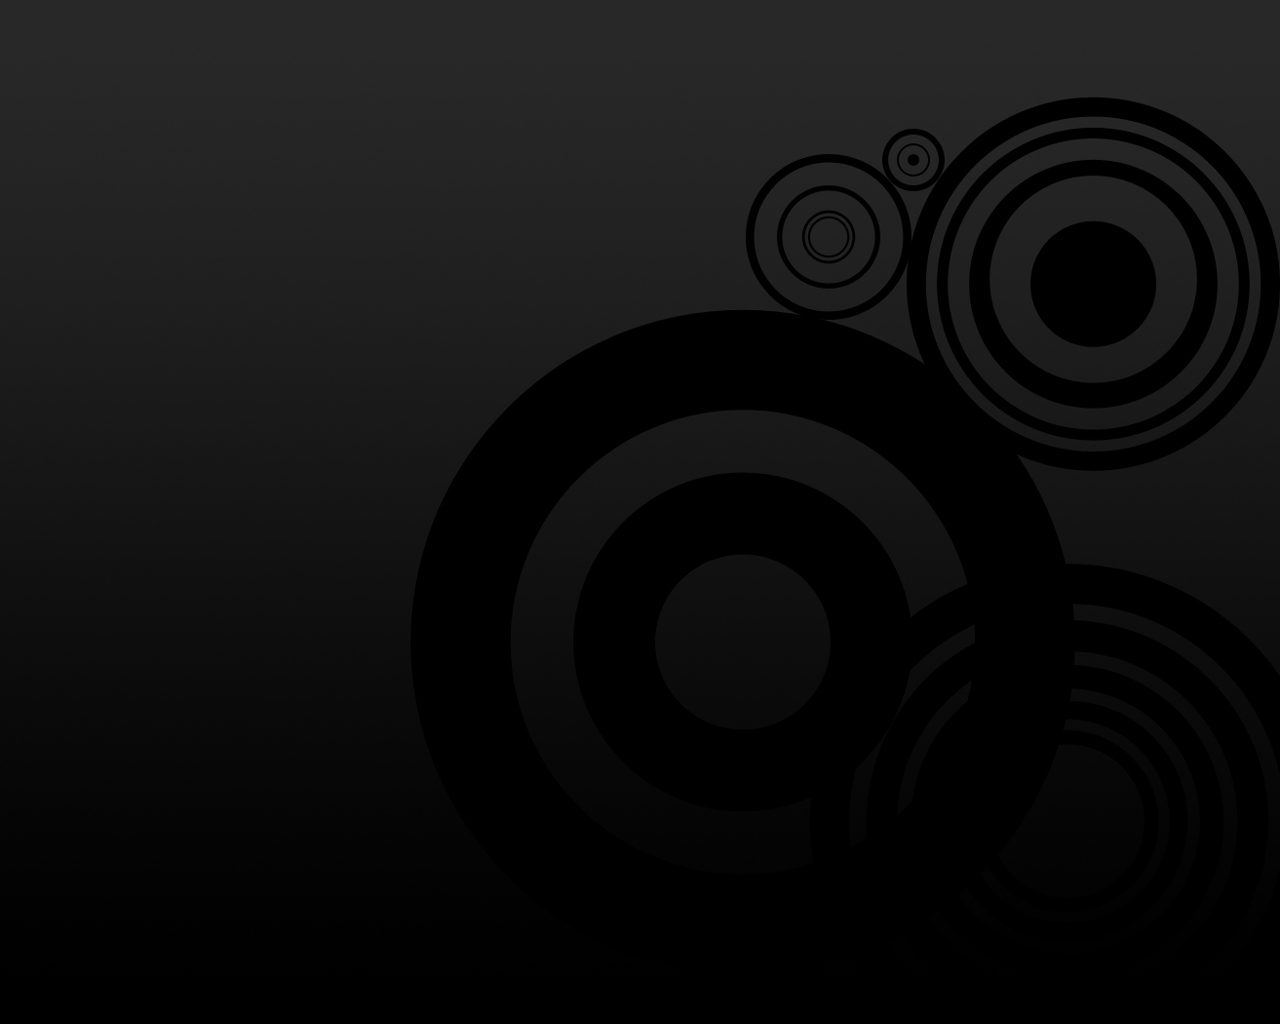 blackhdwallpaperBlack Circles Wallpaper black 26900972 1280 1024 1280x1024